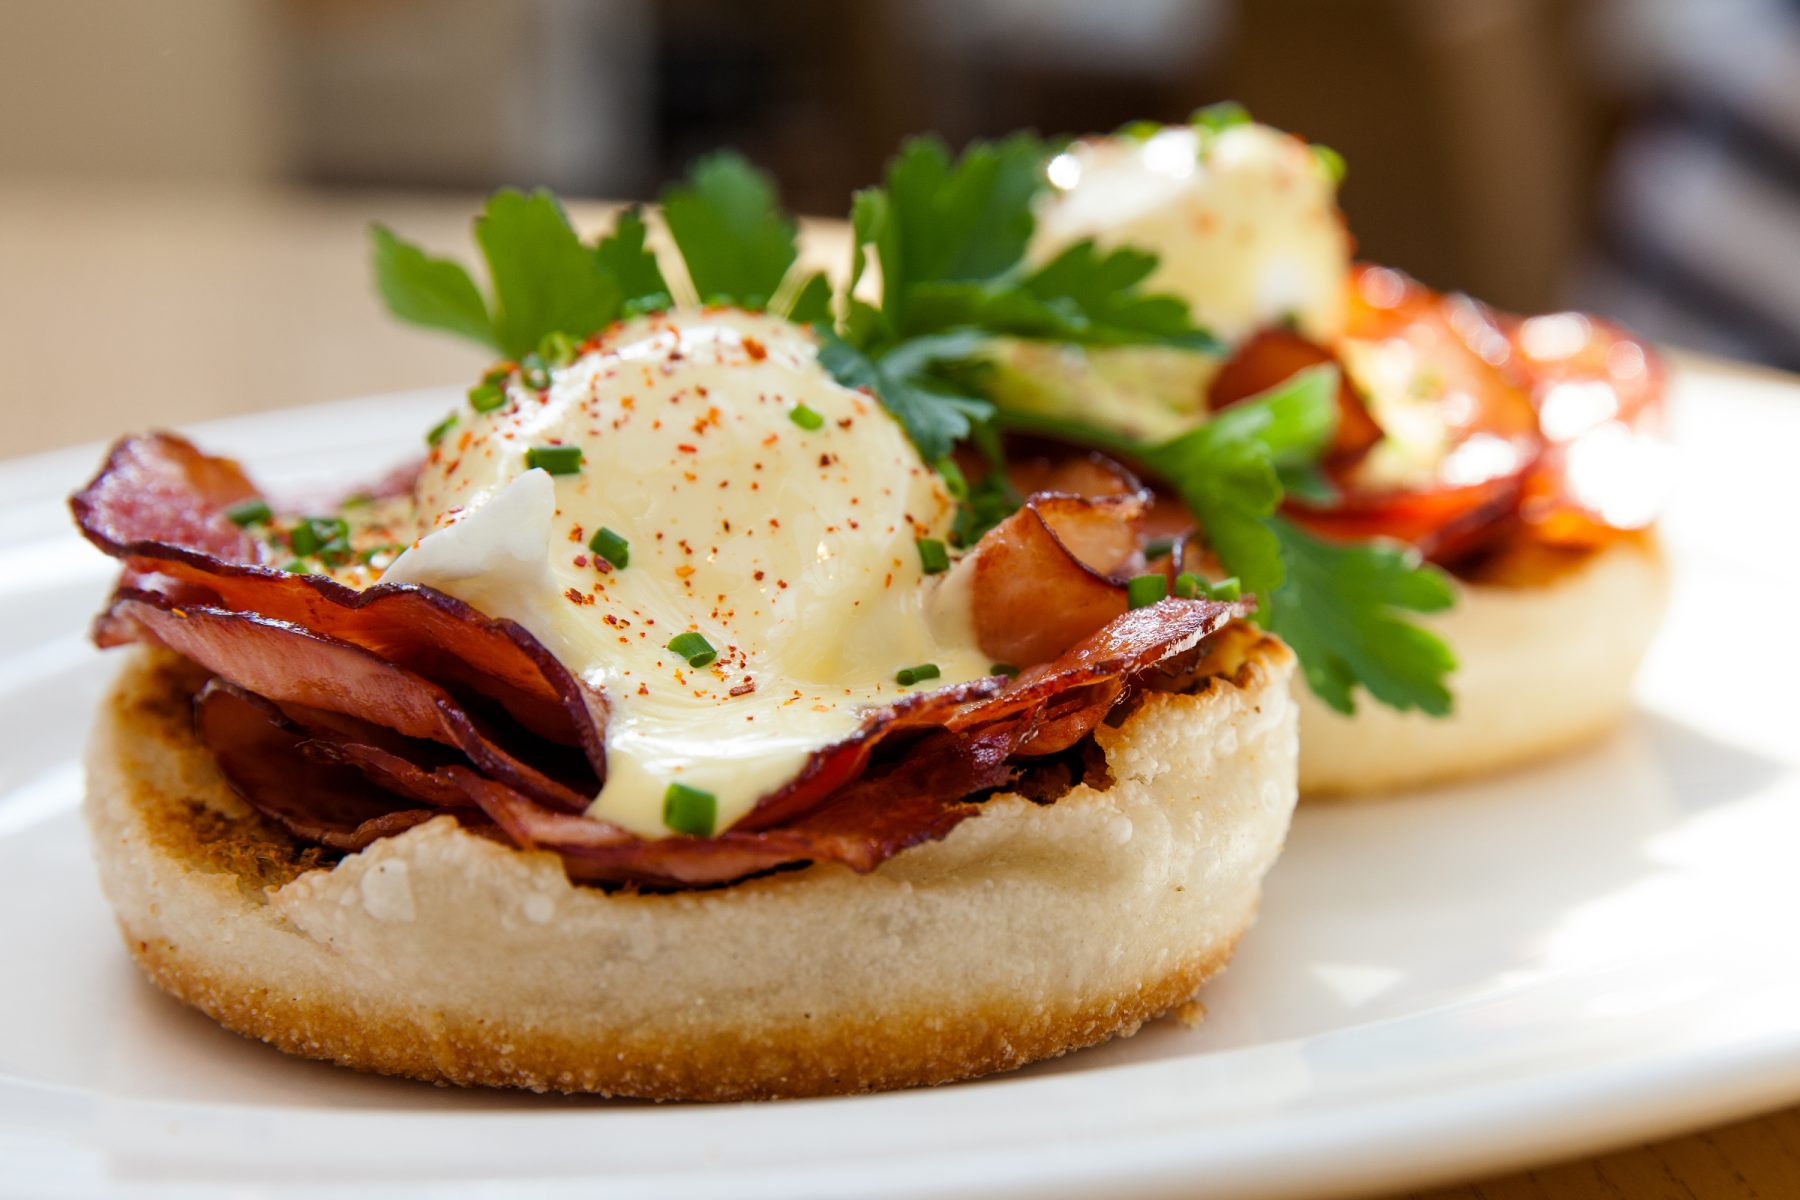 Where to go for Easter brunch in Chicago